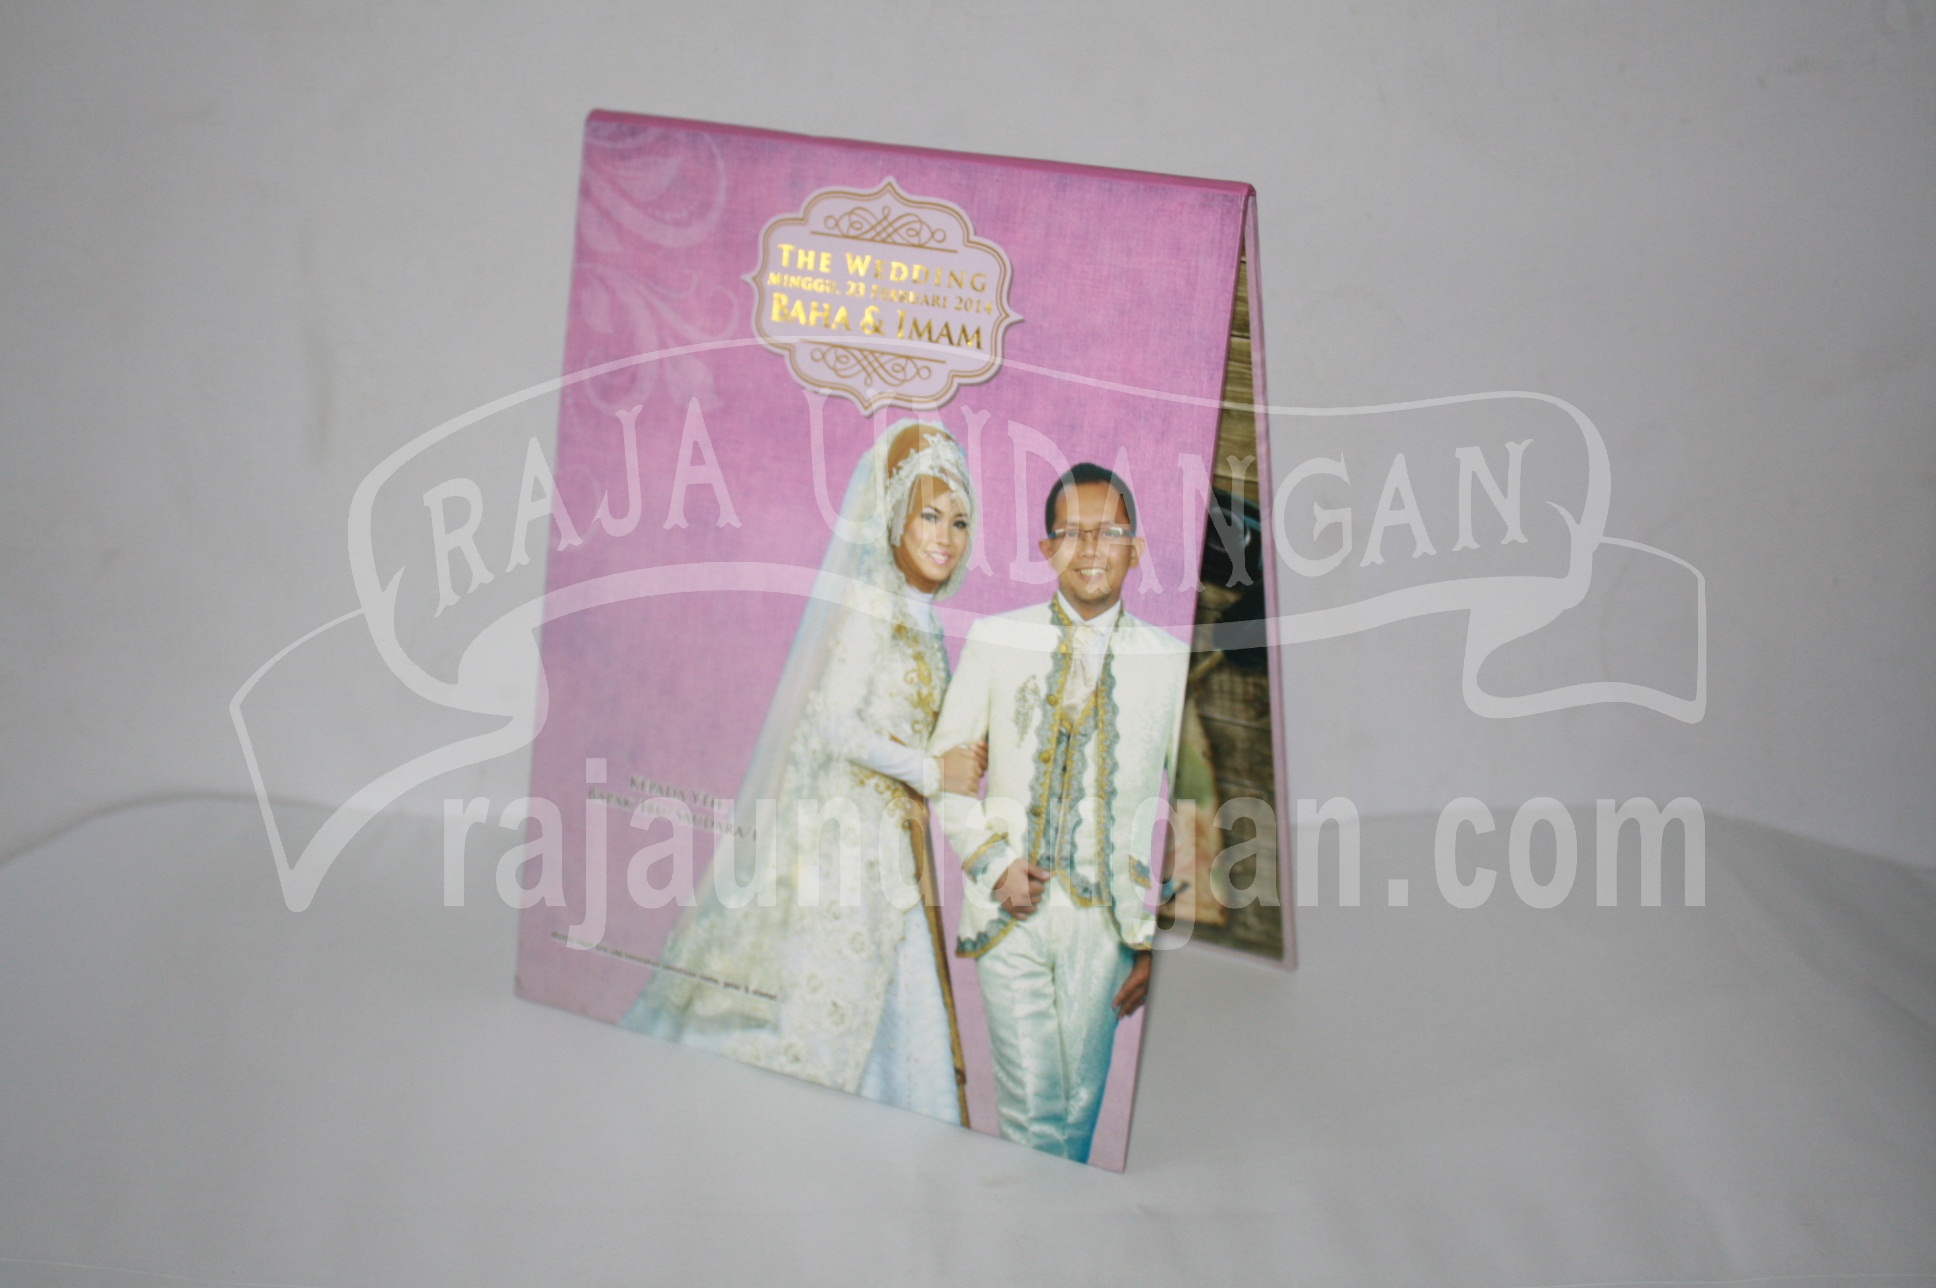 Undangan Pernikahan Hardcover Pop Up 3D Baha dan Imam EDC 49 - Percetakan Wedding Invitations Murah di Kapasan